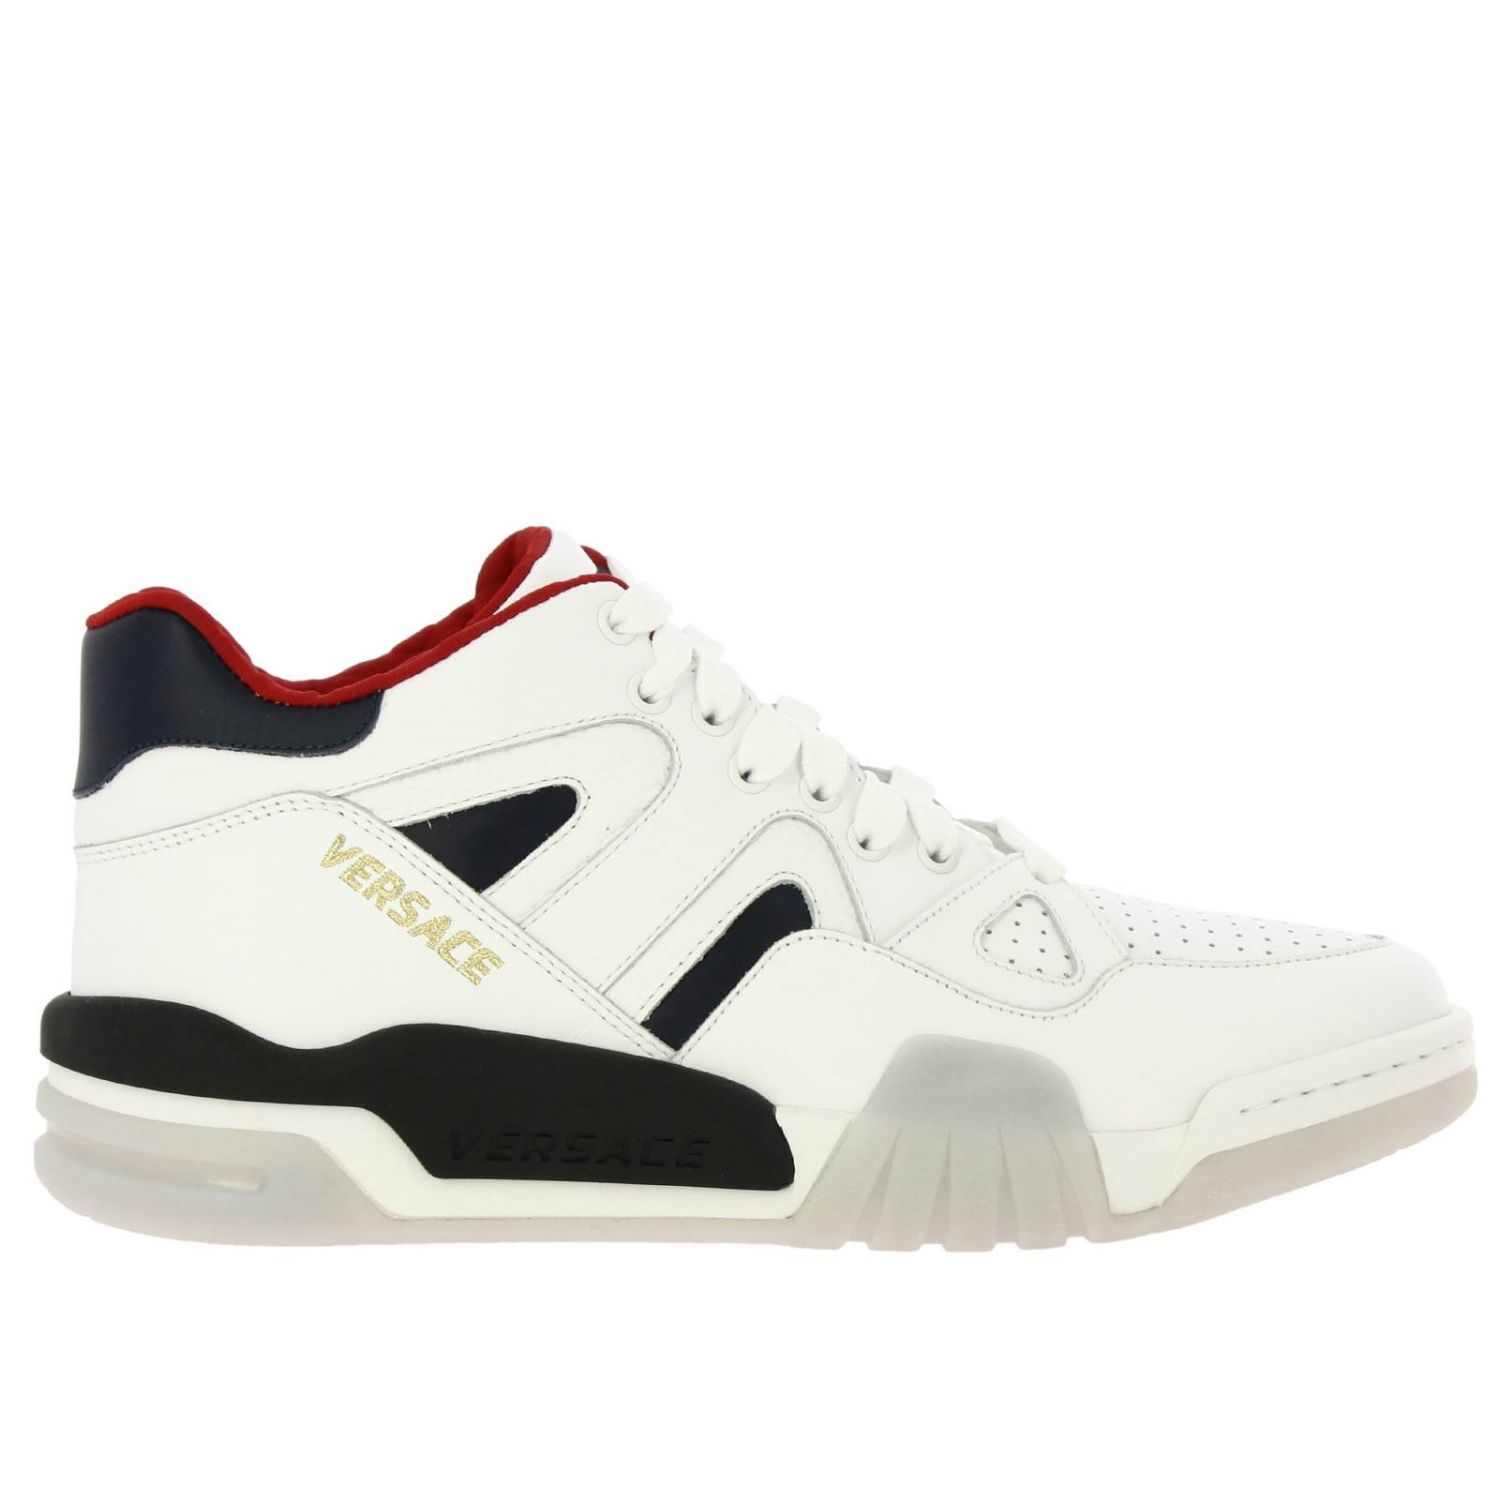 Versace sneakers in leather with maxi rubber sole white 1